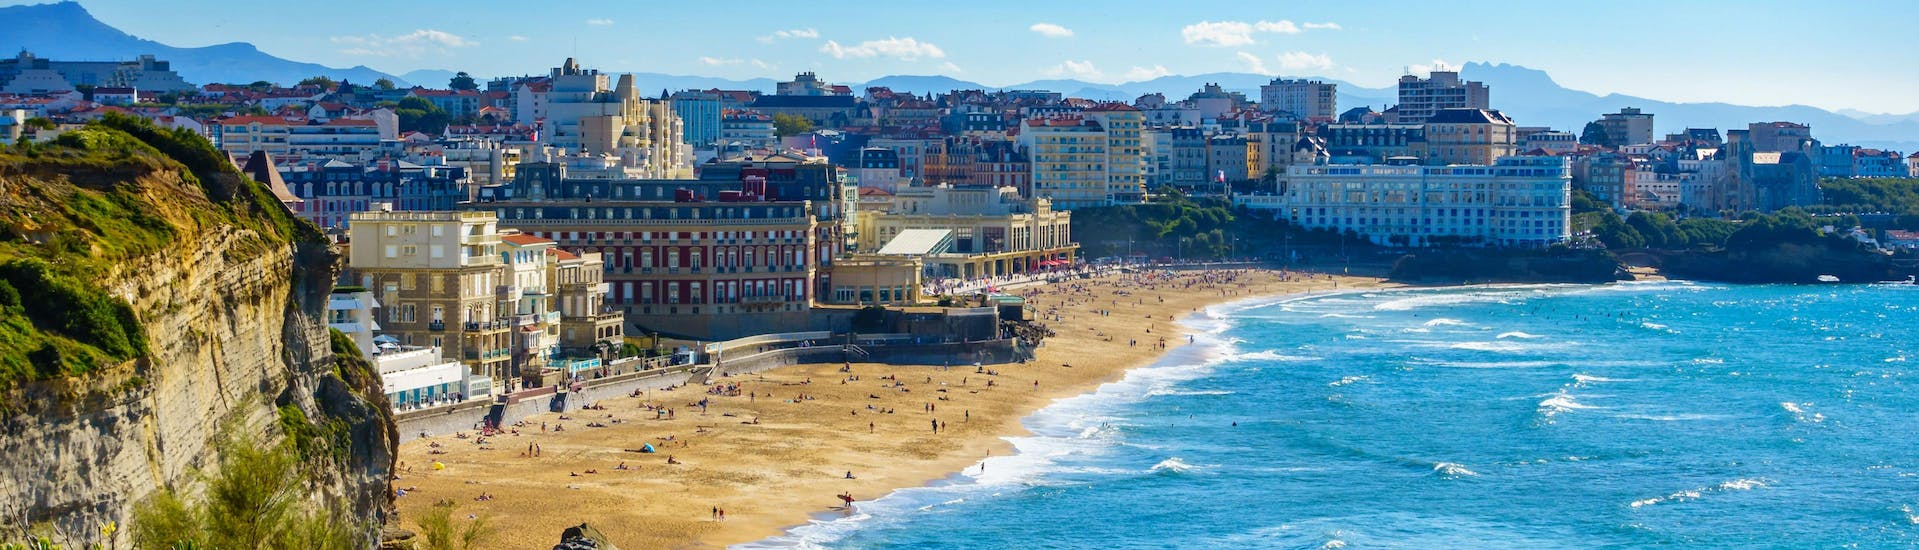 View of the bay of Biarritz and the Grand Plage, one of the surfing hotspots in the French Basque Country.